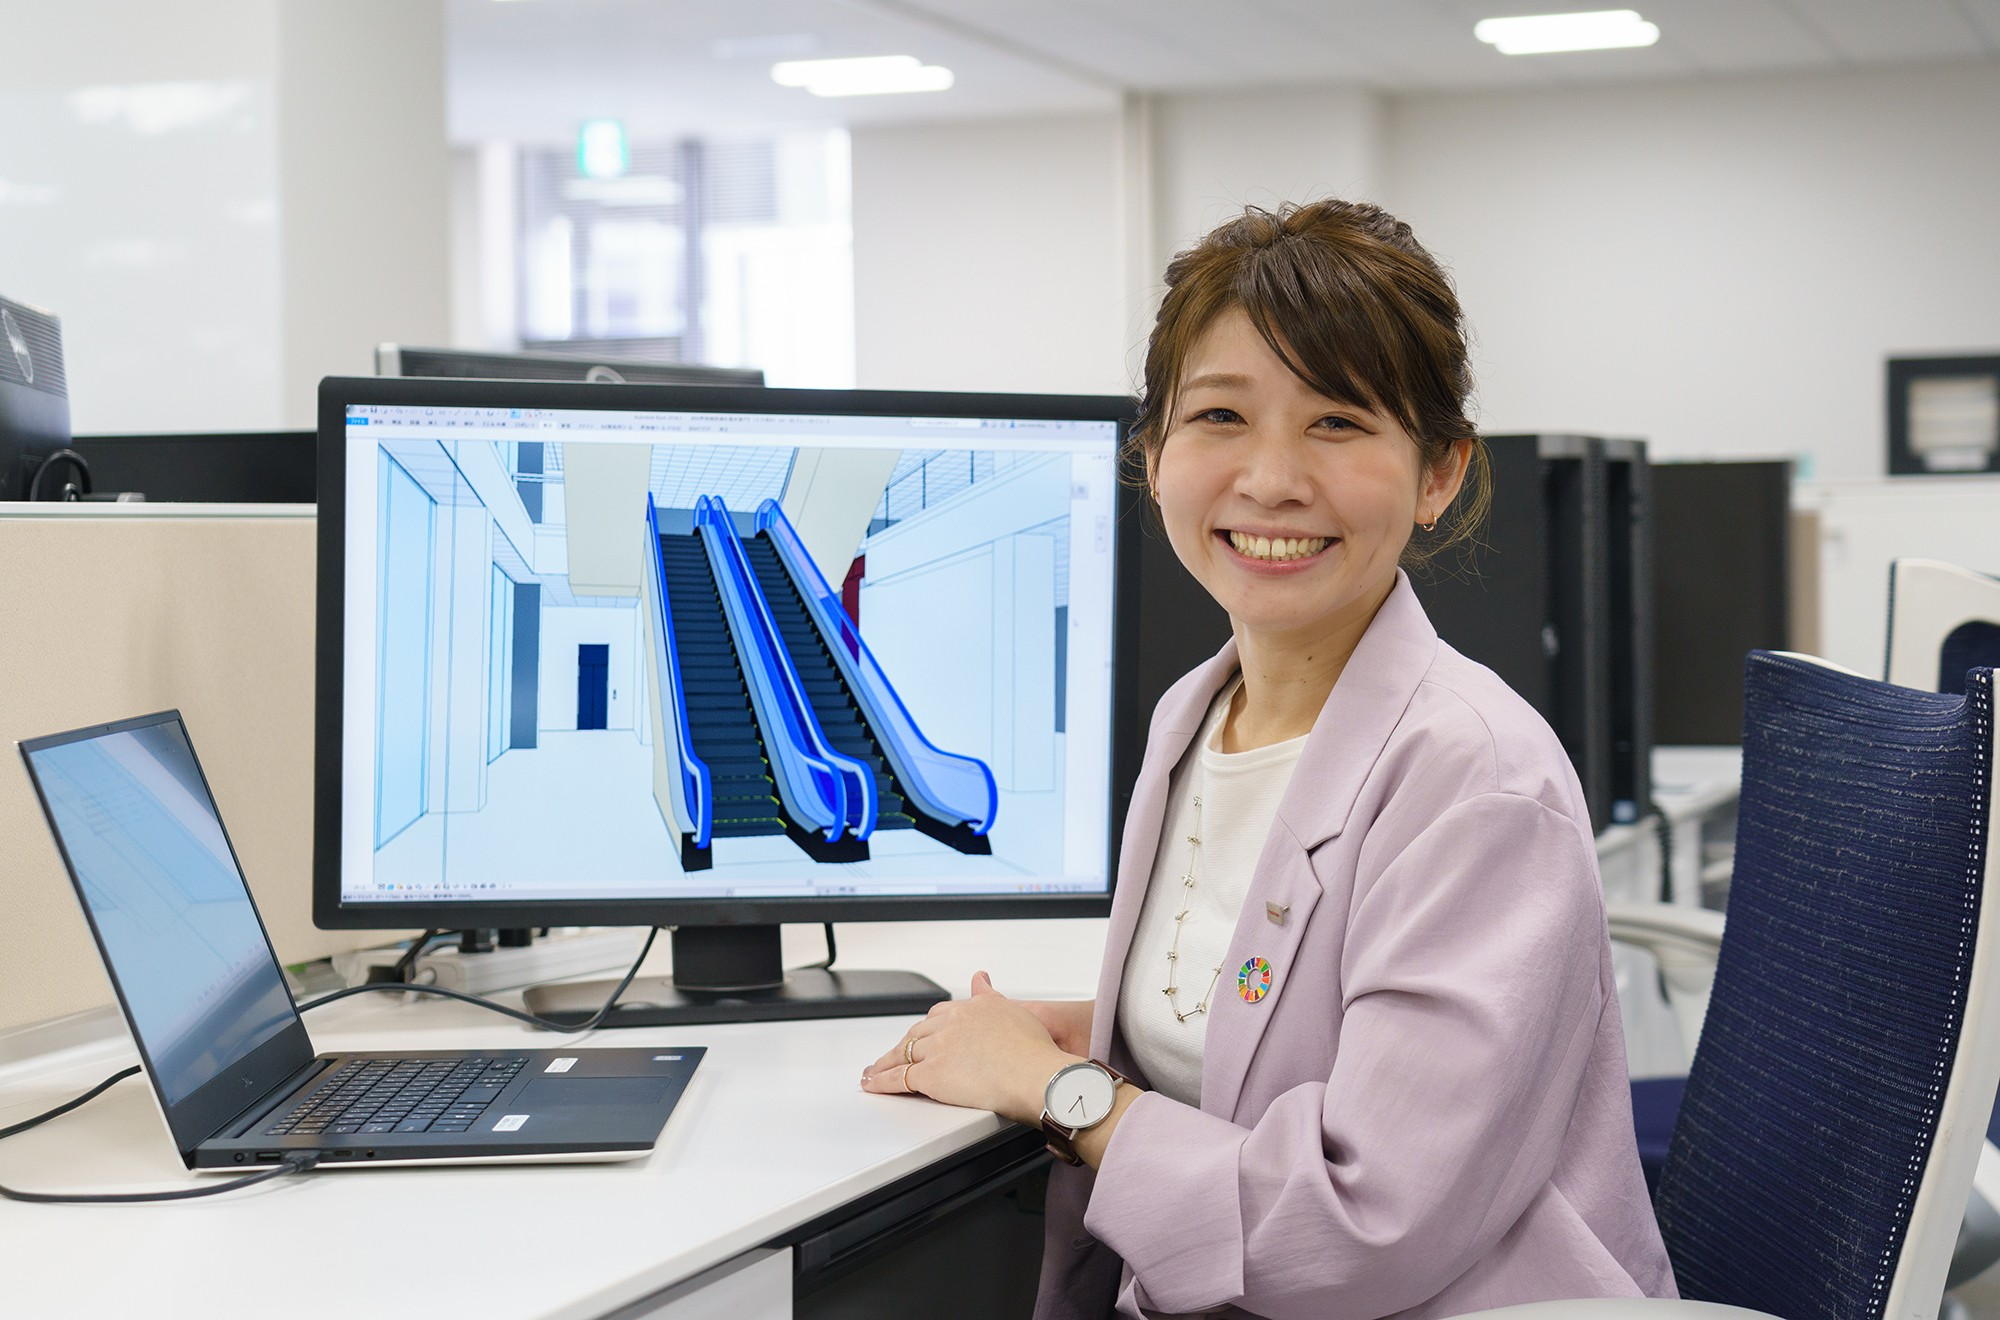 Toshiba's young engineers: Buildings constructed in the digital world are changing construction sites in the physical world